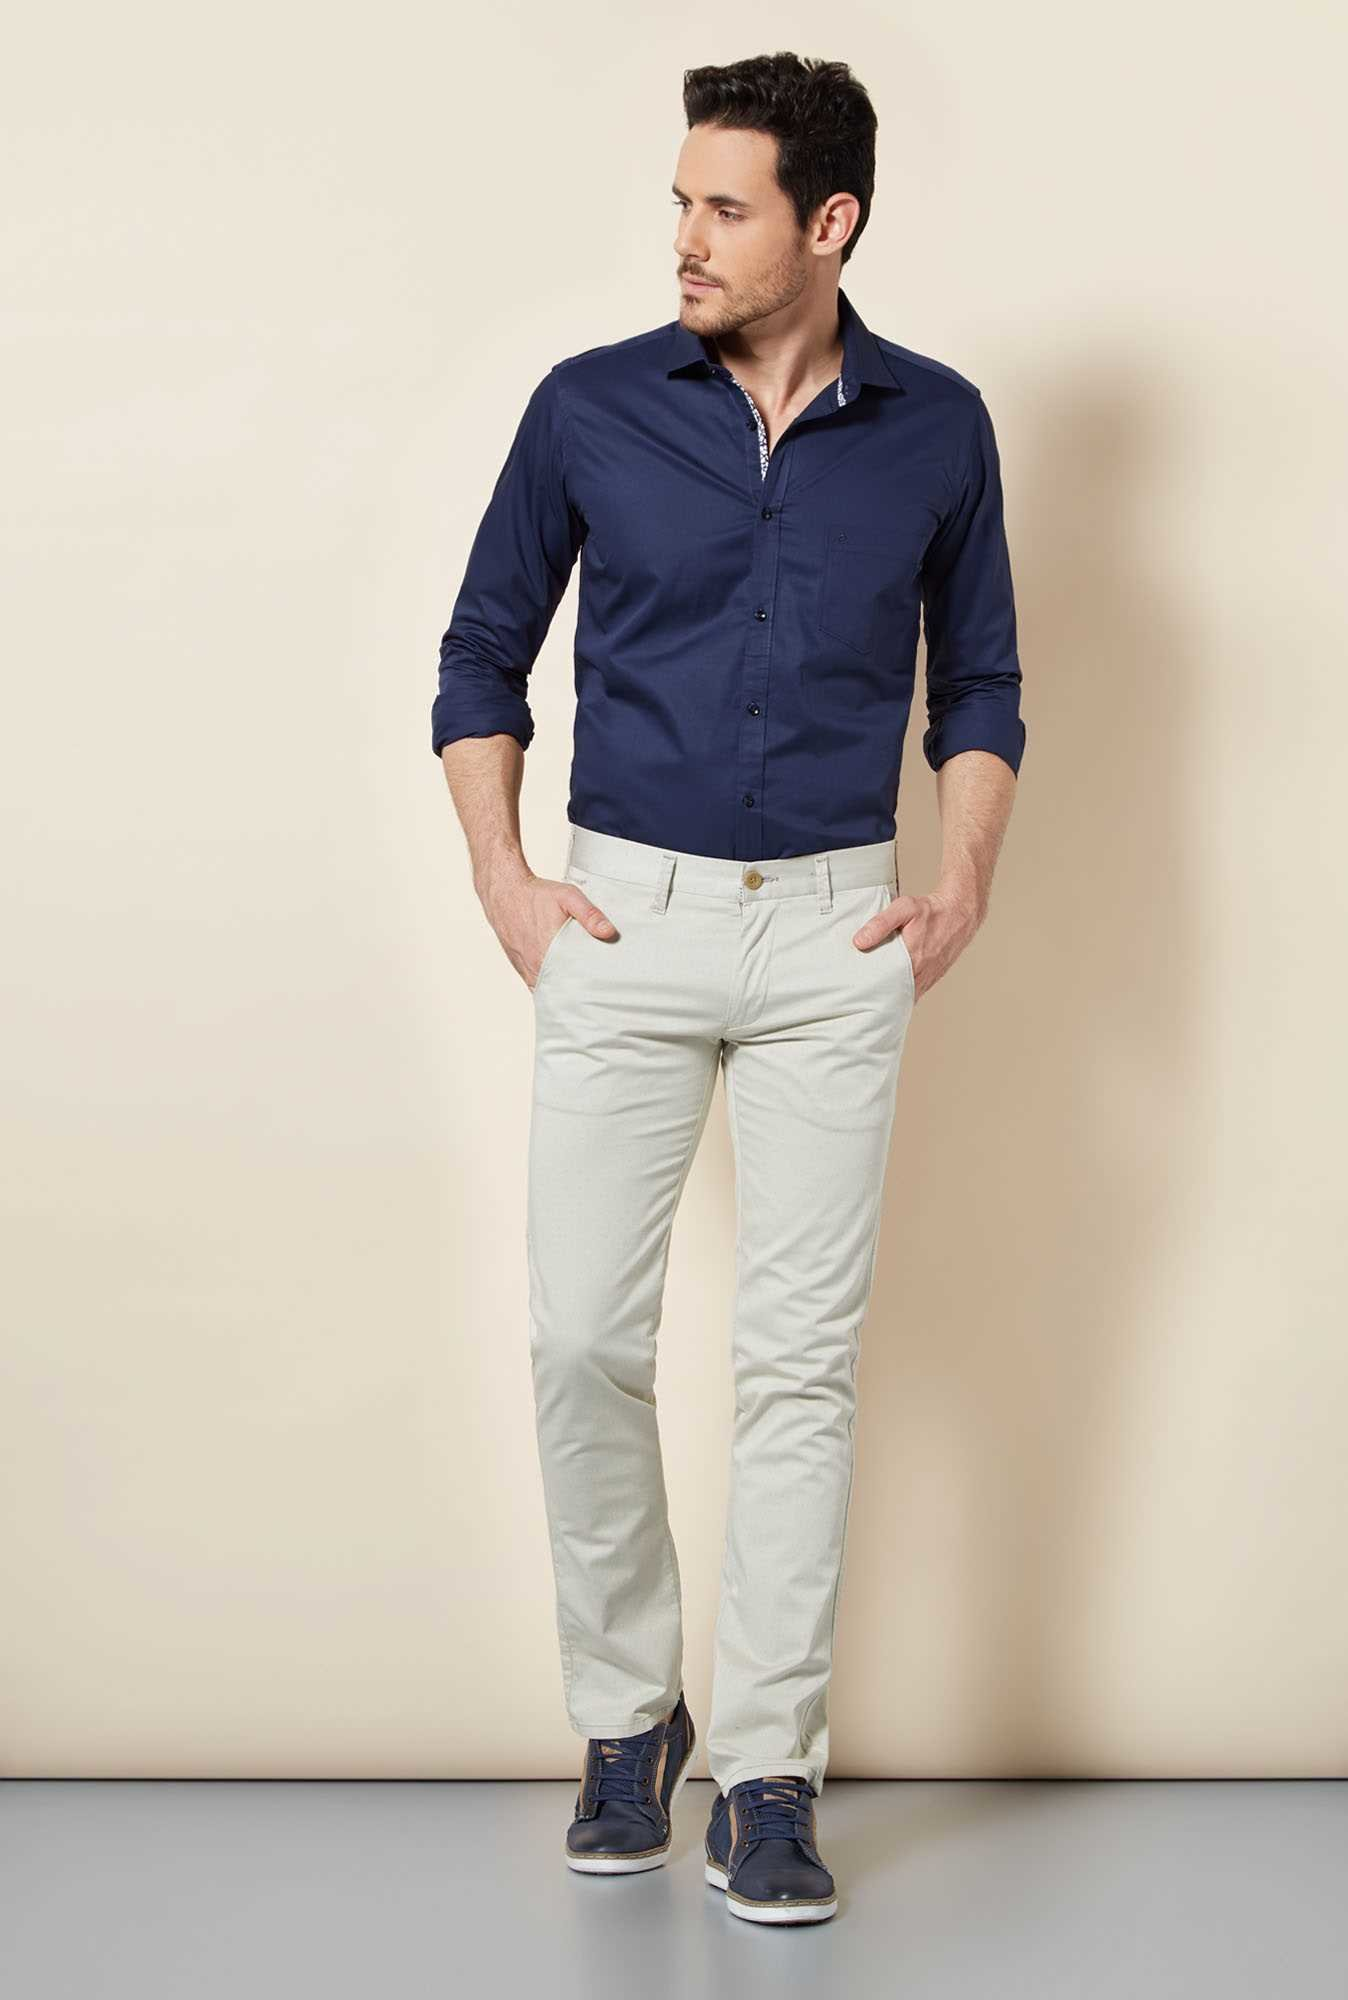 Easies Opal Blue Solid Shirt